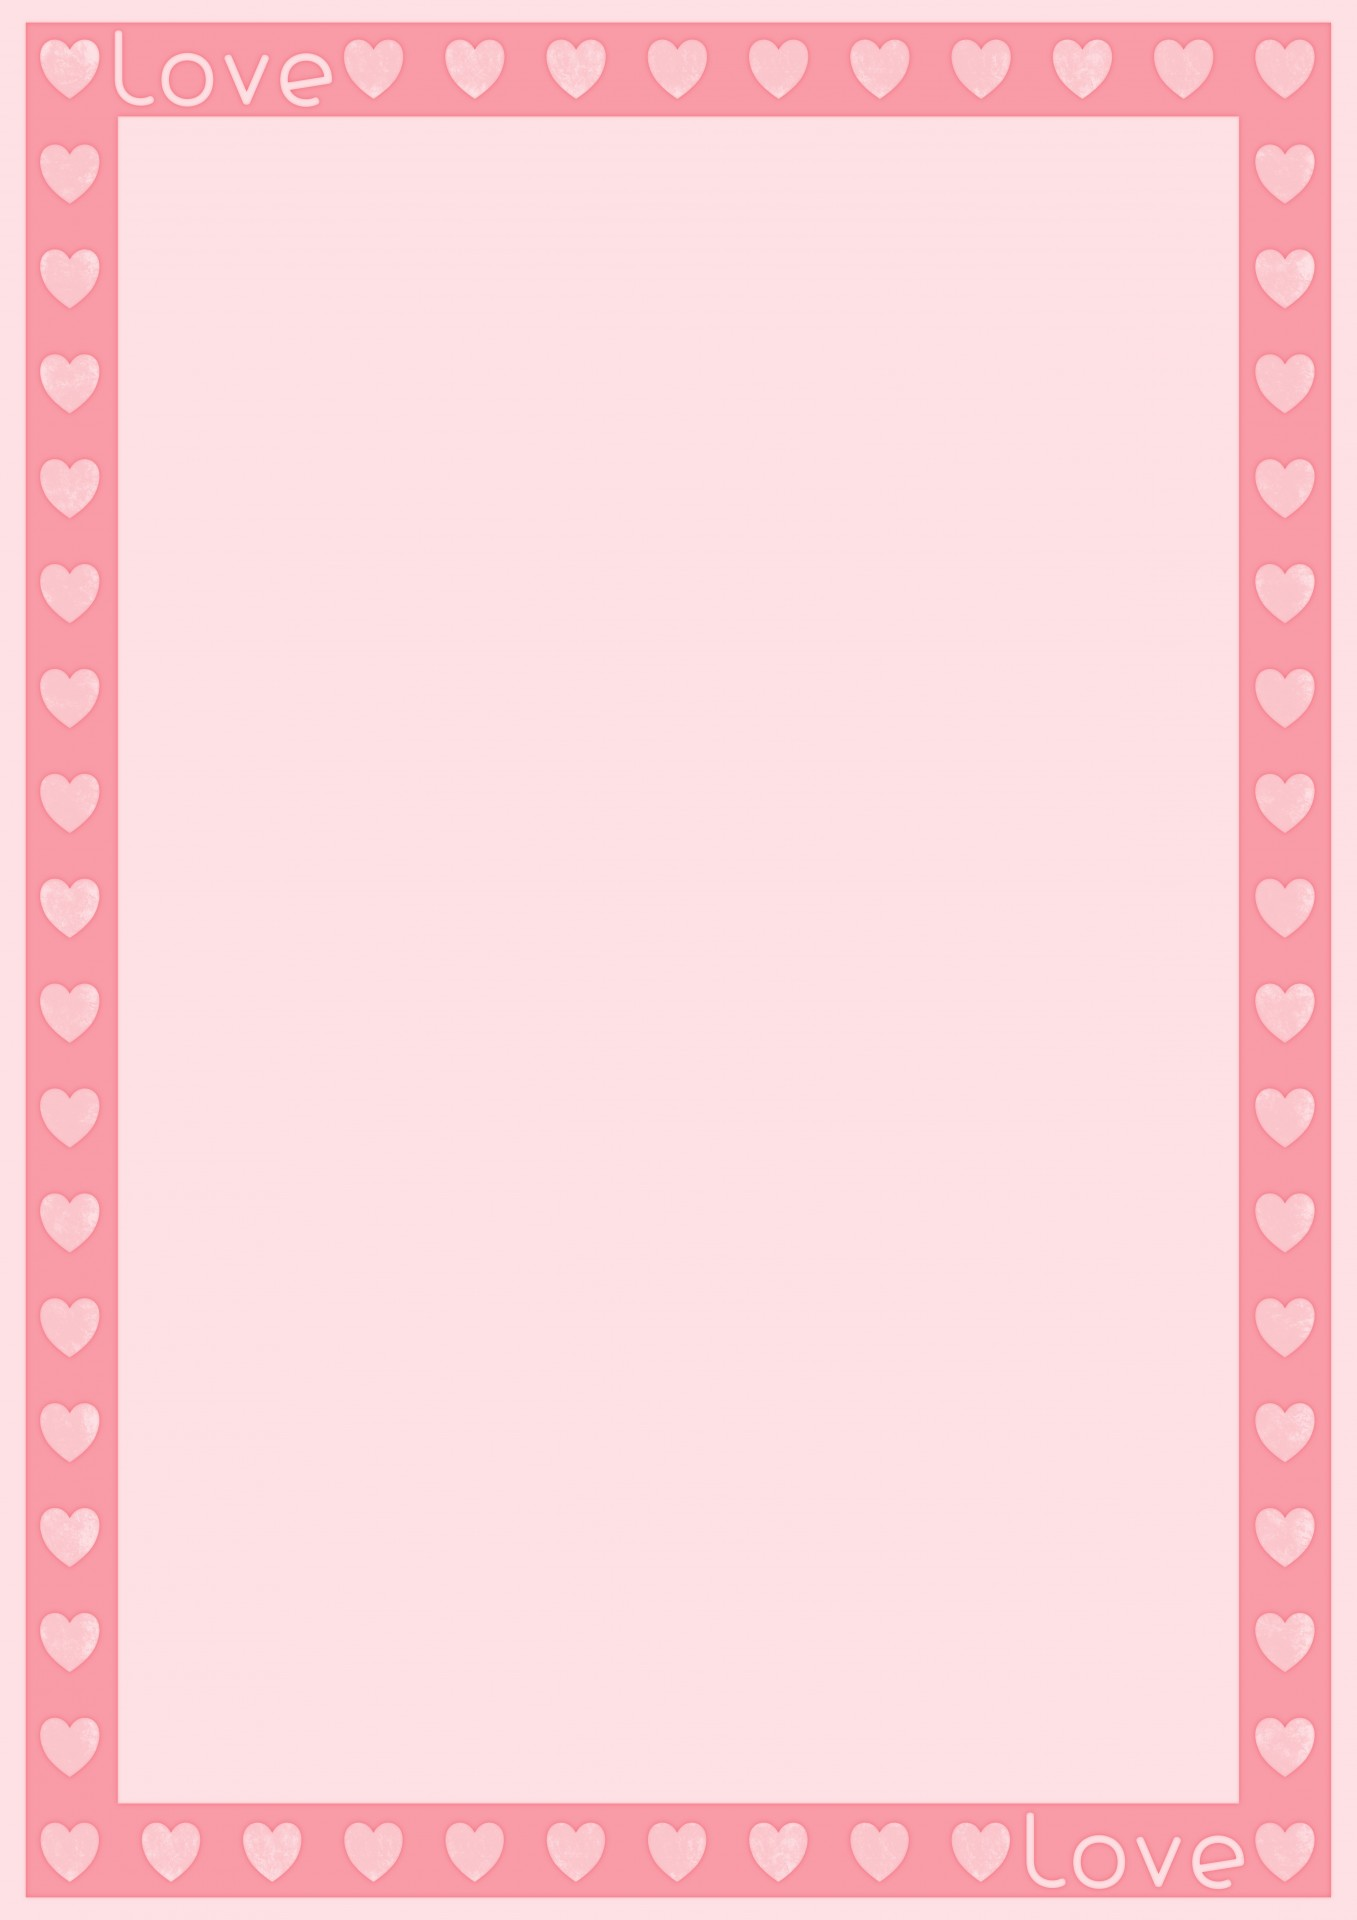 love heart border template stationery free photo from